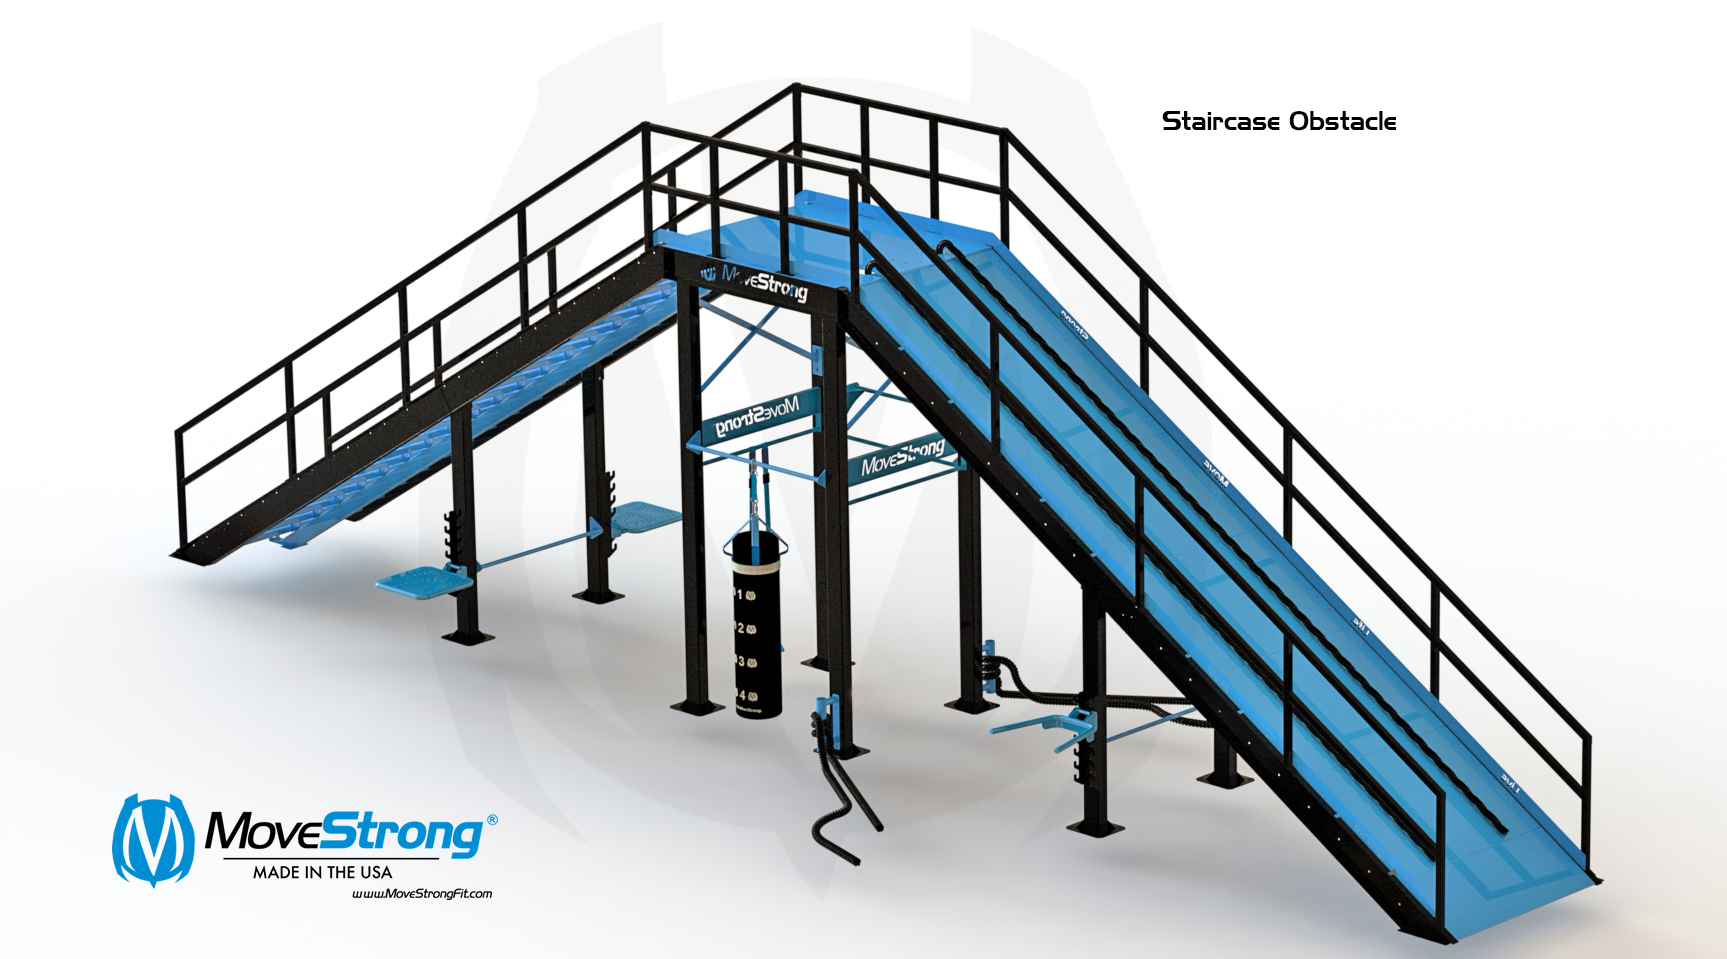 Copy of Staircase Obstacle with Ramp Challenge